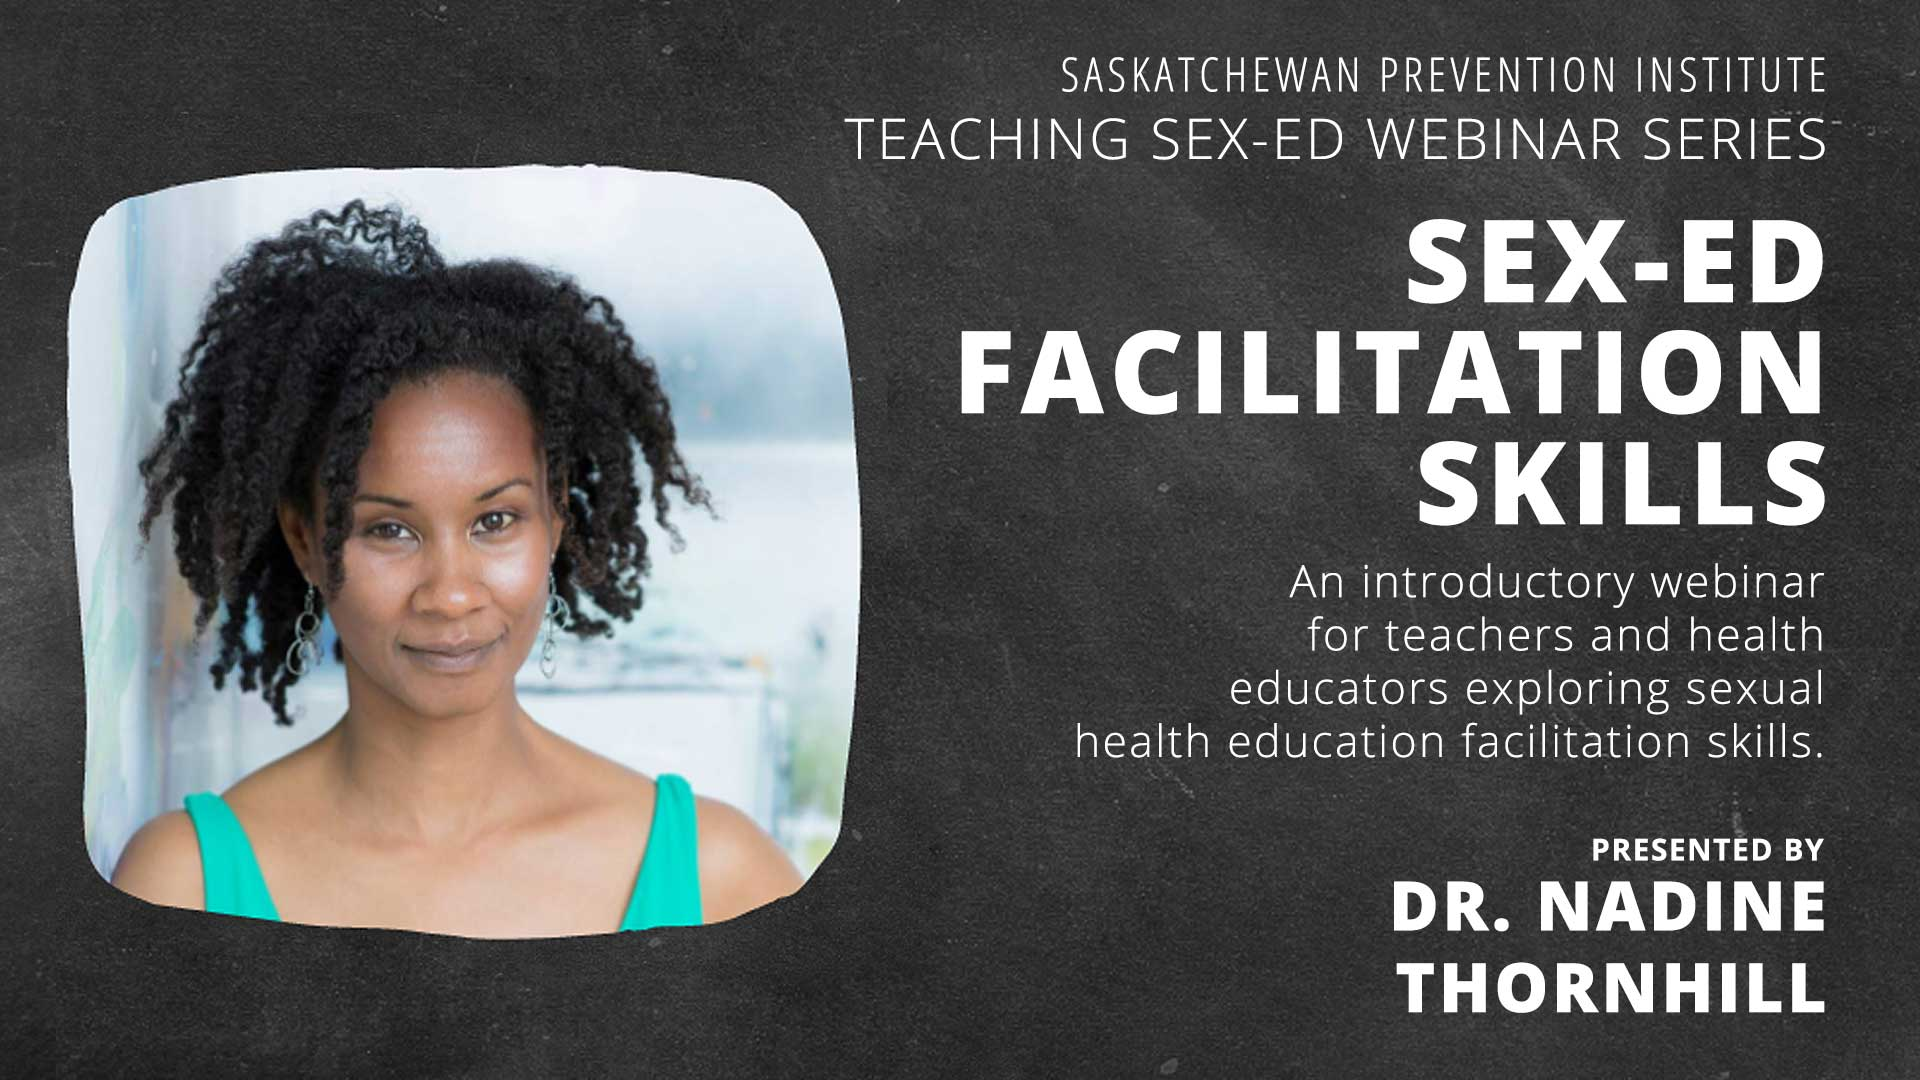 Teaching Sex-Ed: Sex-Ed Facilitation Skills